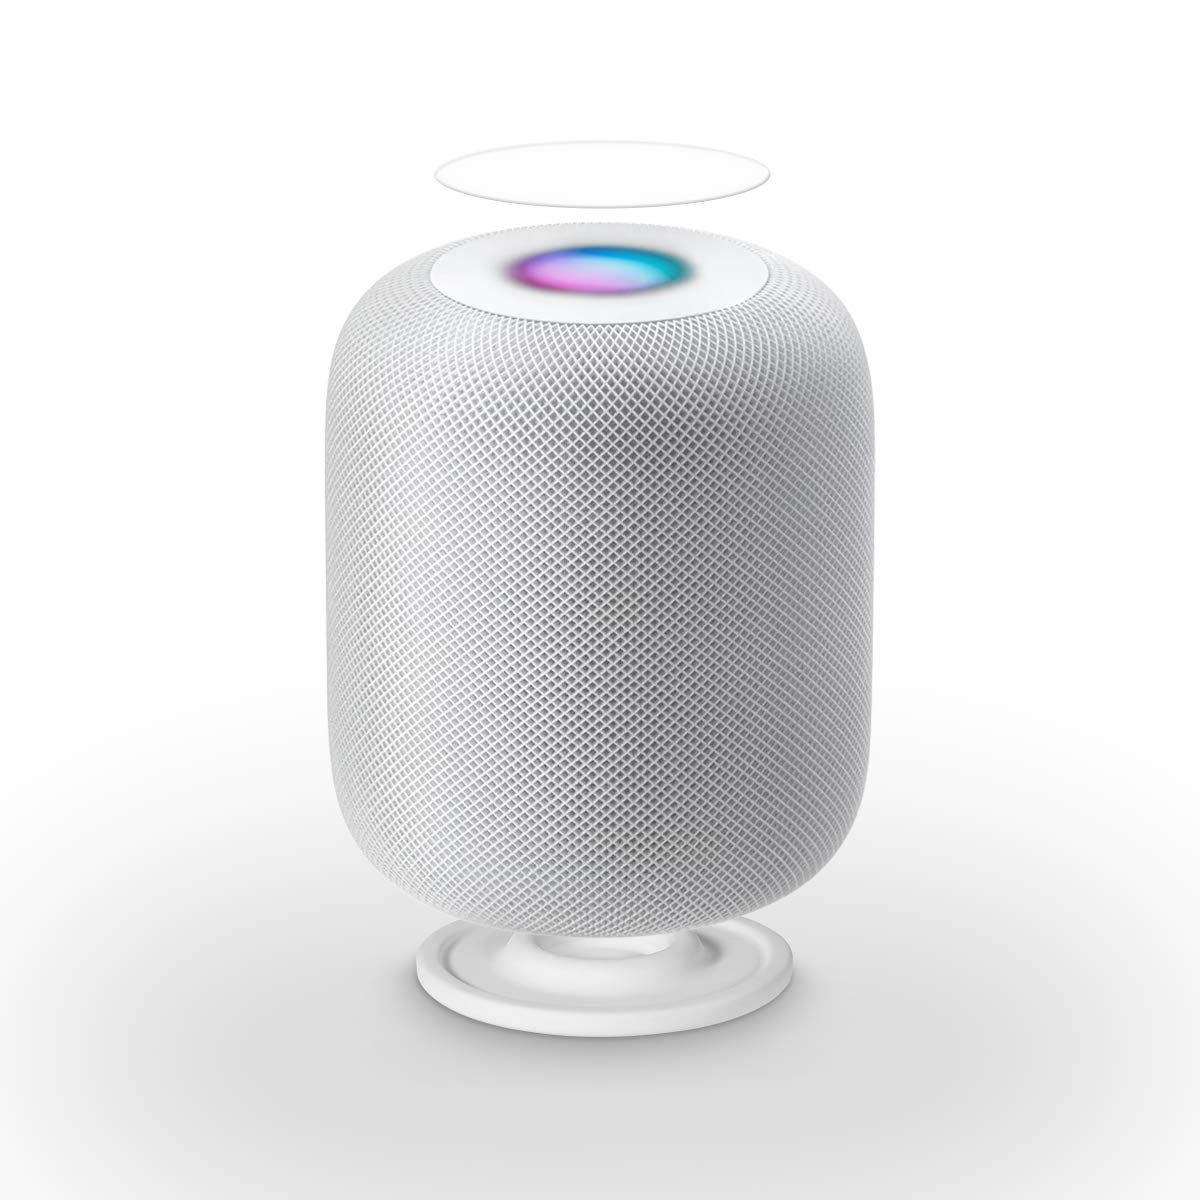 LANMU Anti-Slip Pad for HomePod,Silicone Shockproof Coaster Stand for HomePod with Screen Protectors (White)